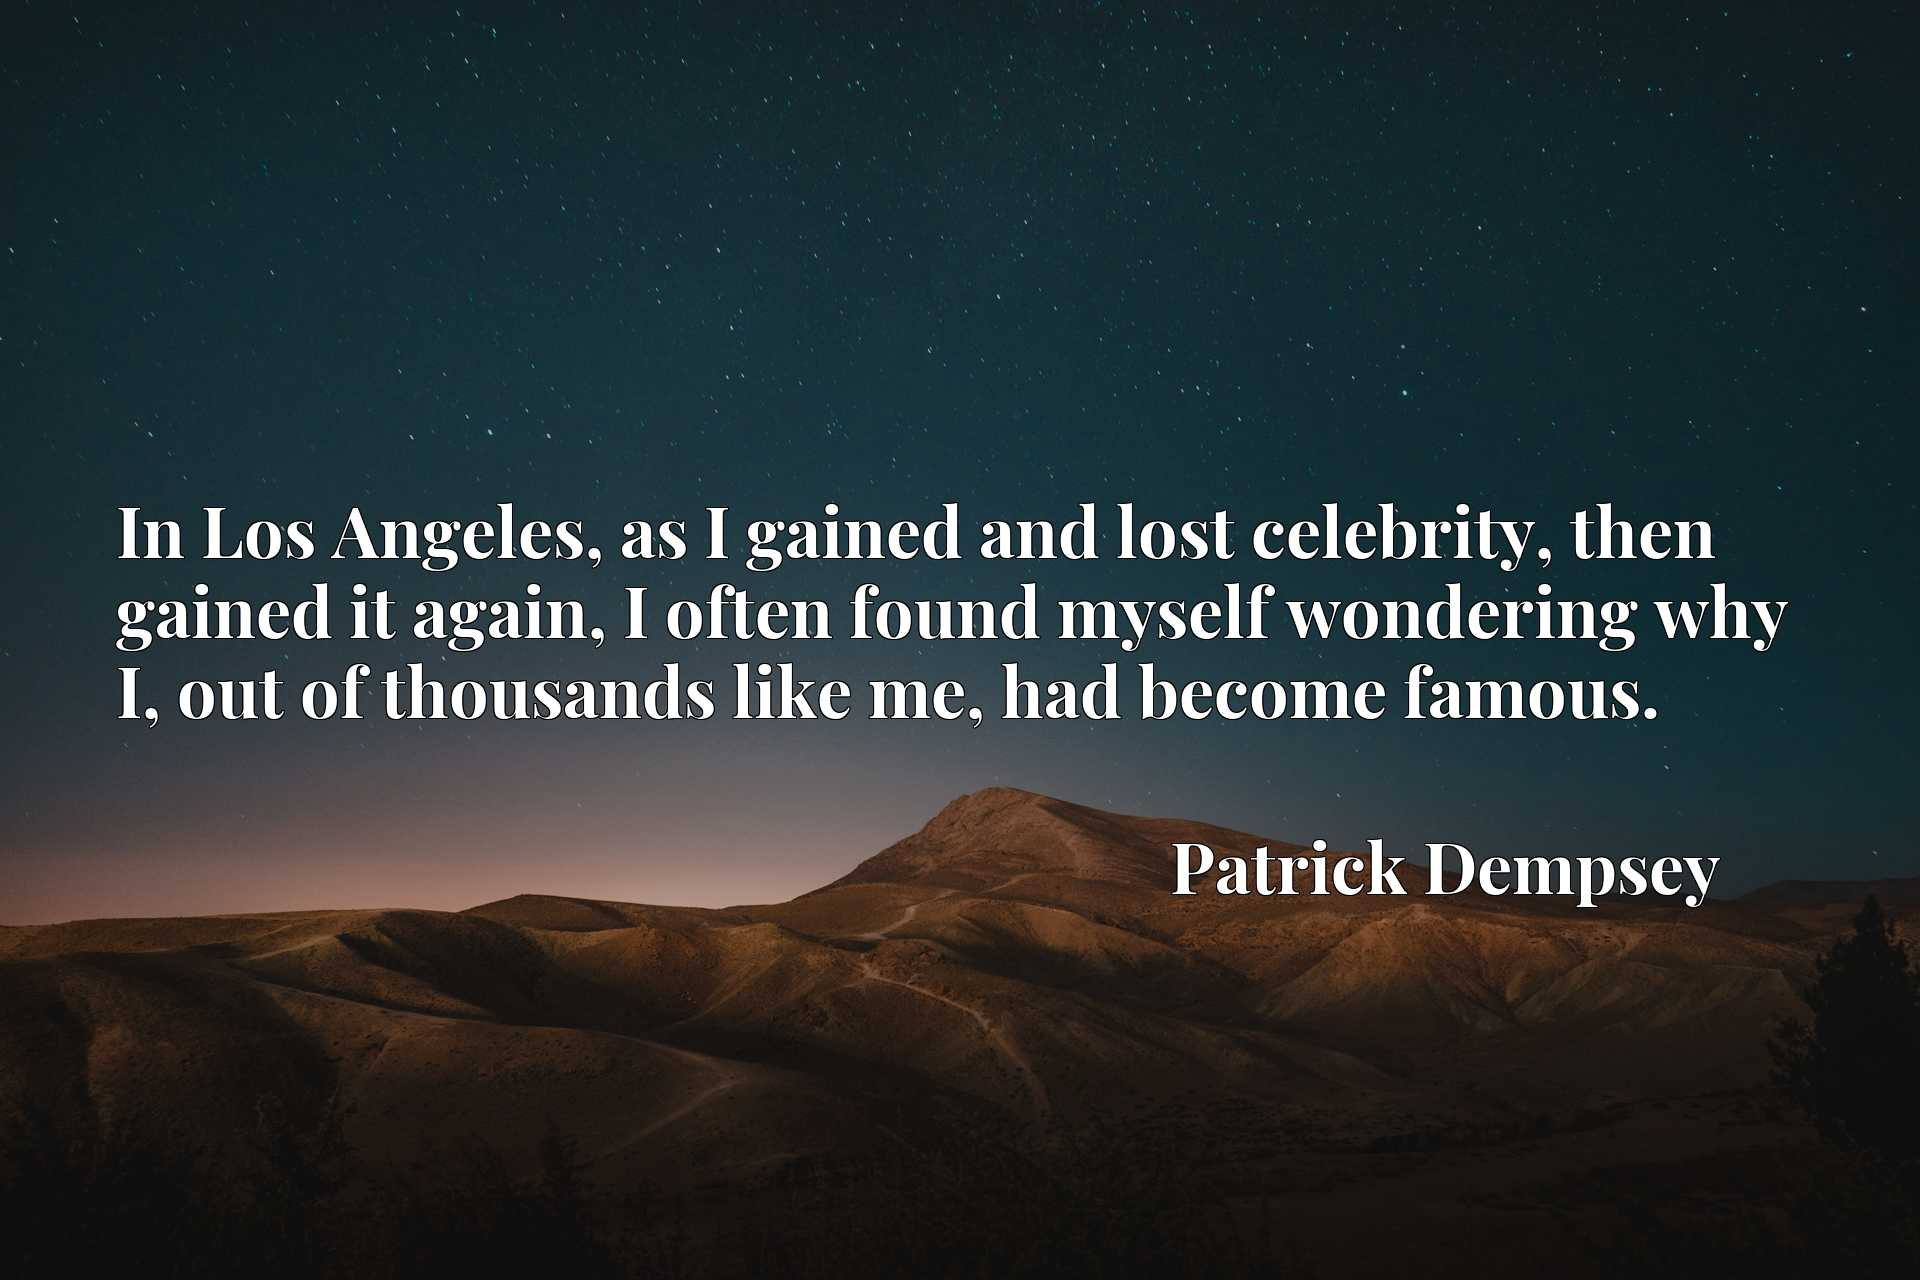 In Los Angeles, as I gained and lost celebrity, then gained it again, I often found myself wondering why I, out of thousands like me, had become famous.